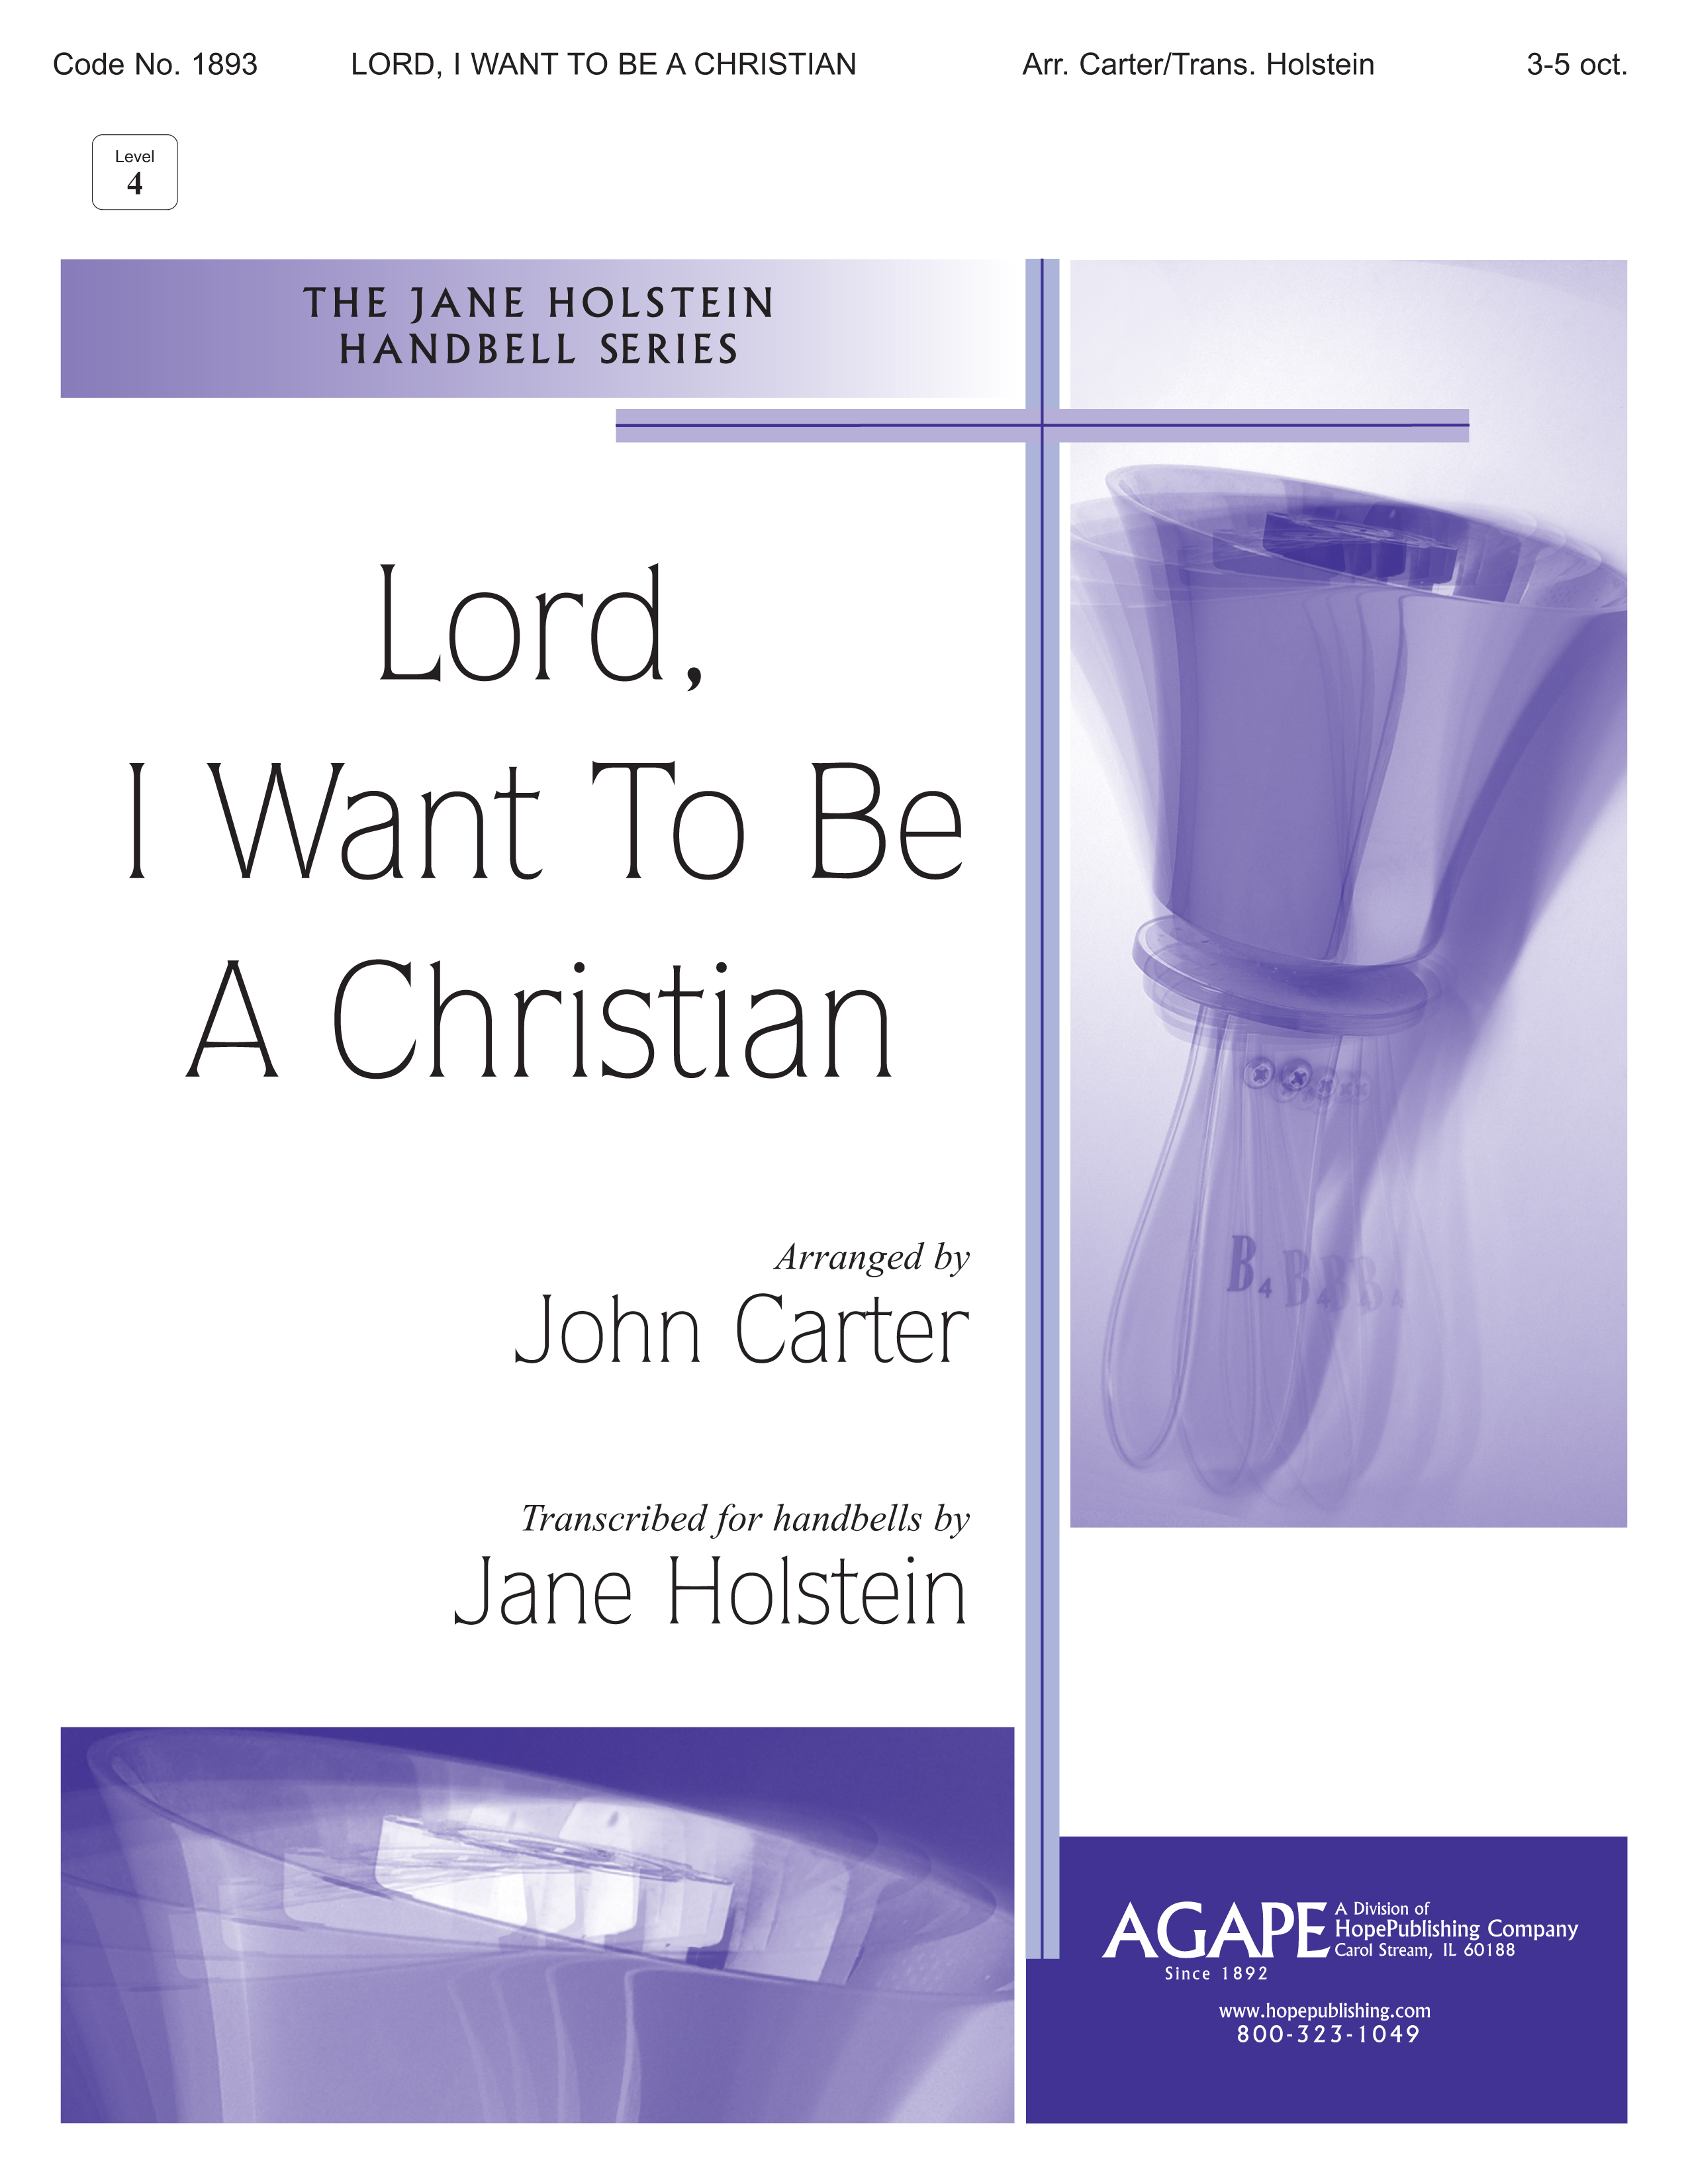 Lord I Want to Be a Christian Cover Image